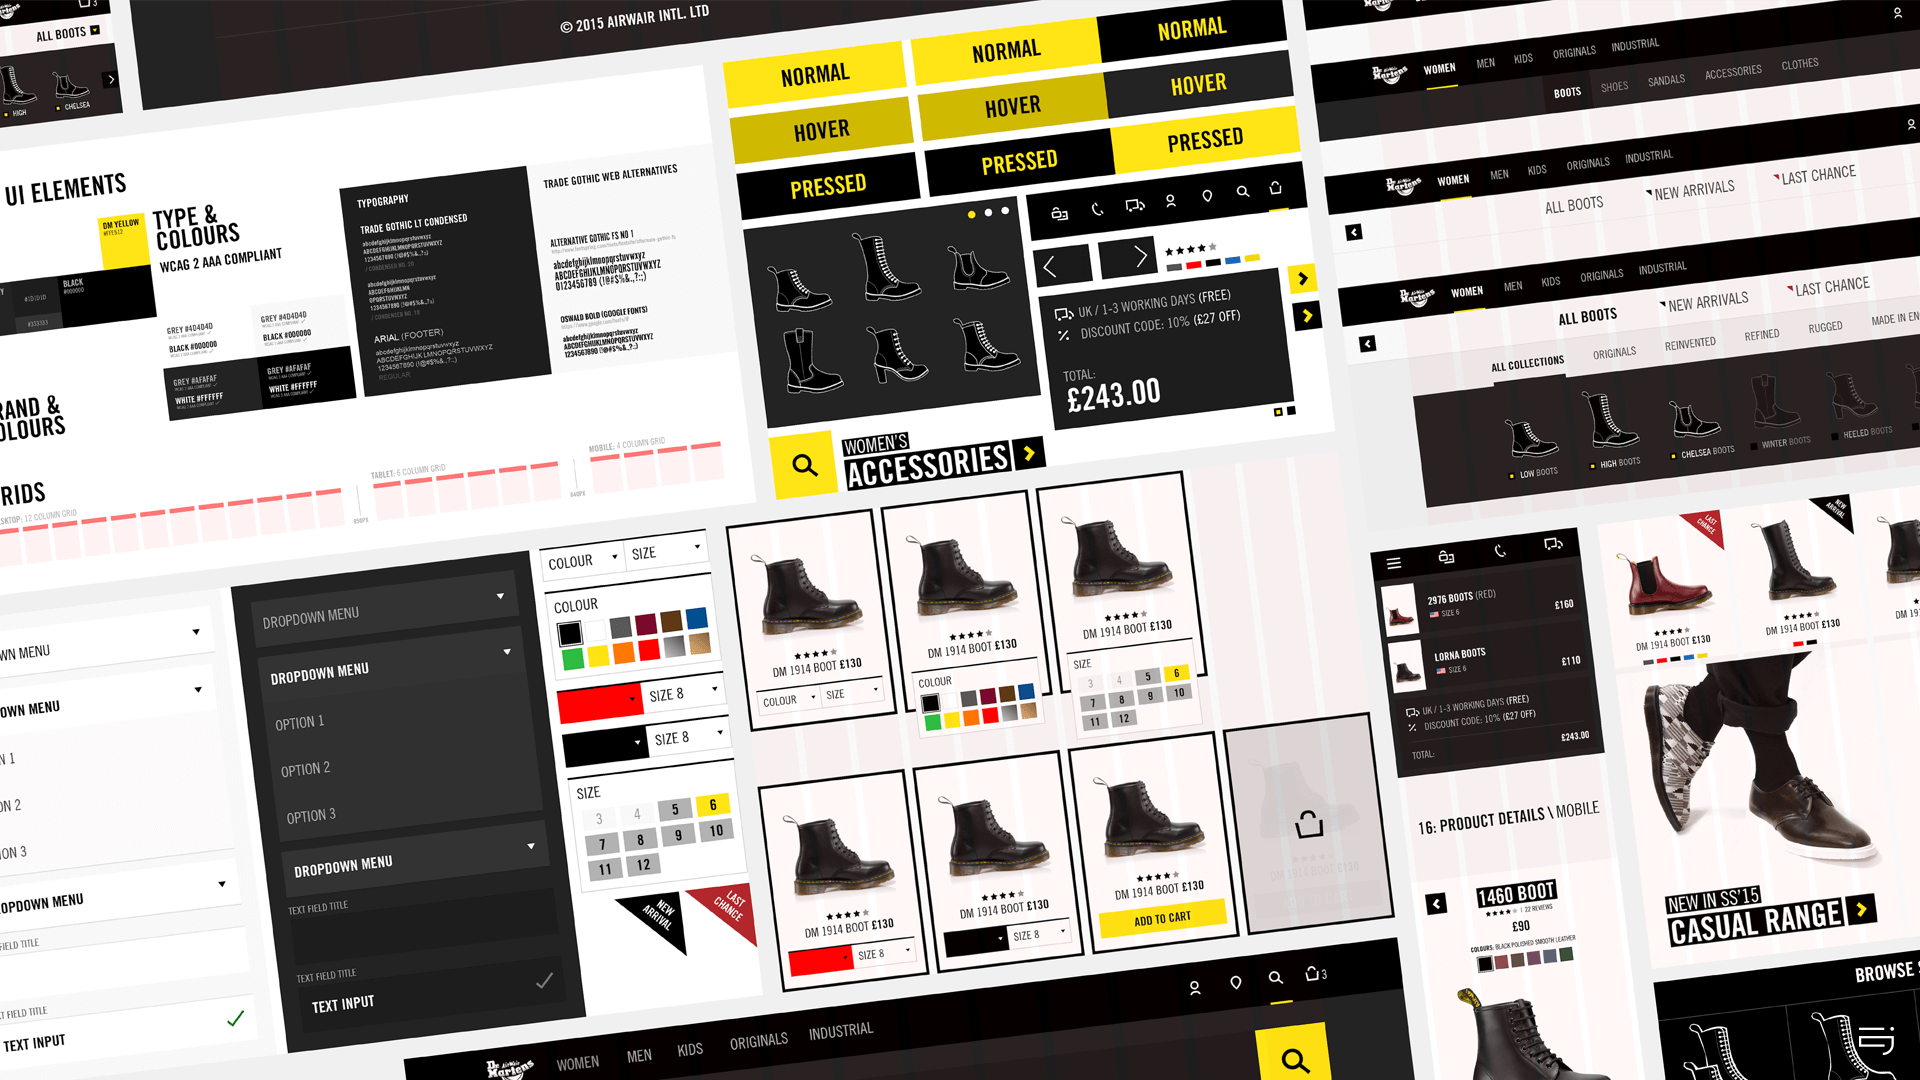 DrMartens18.png